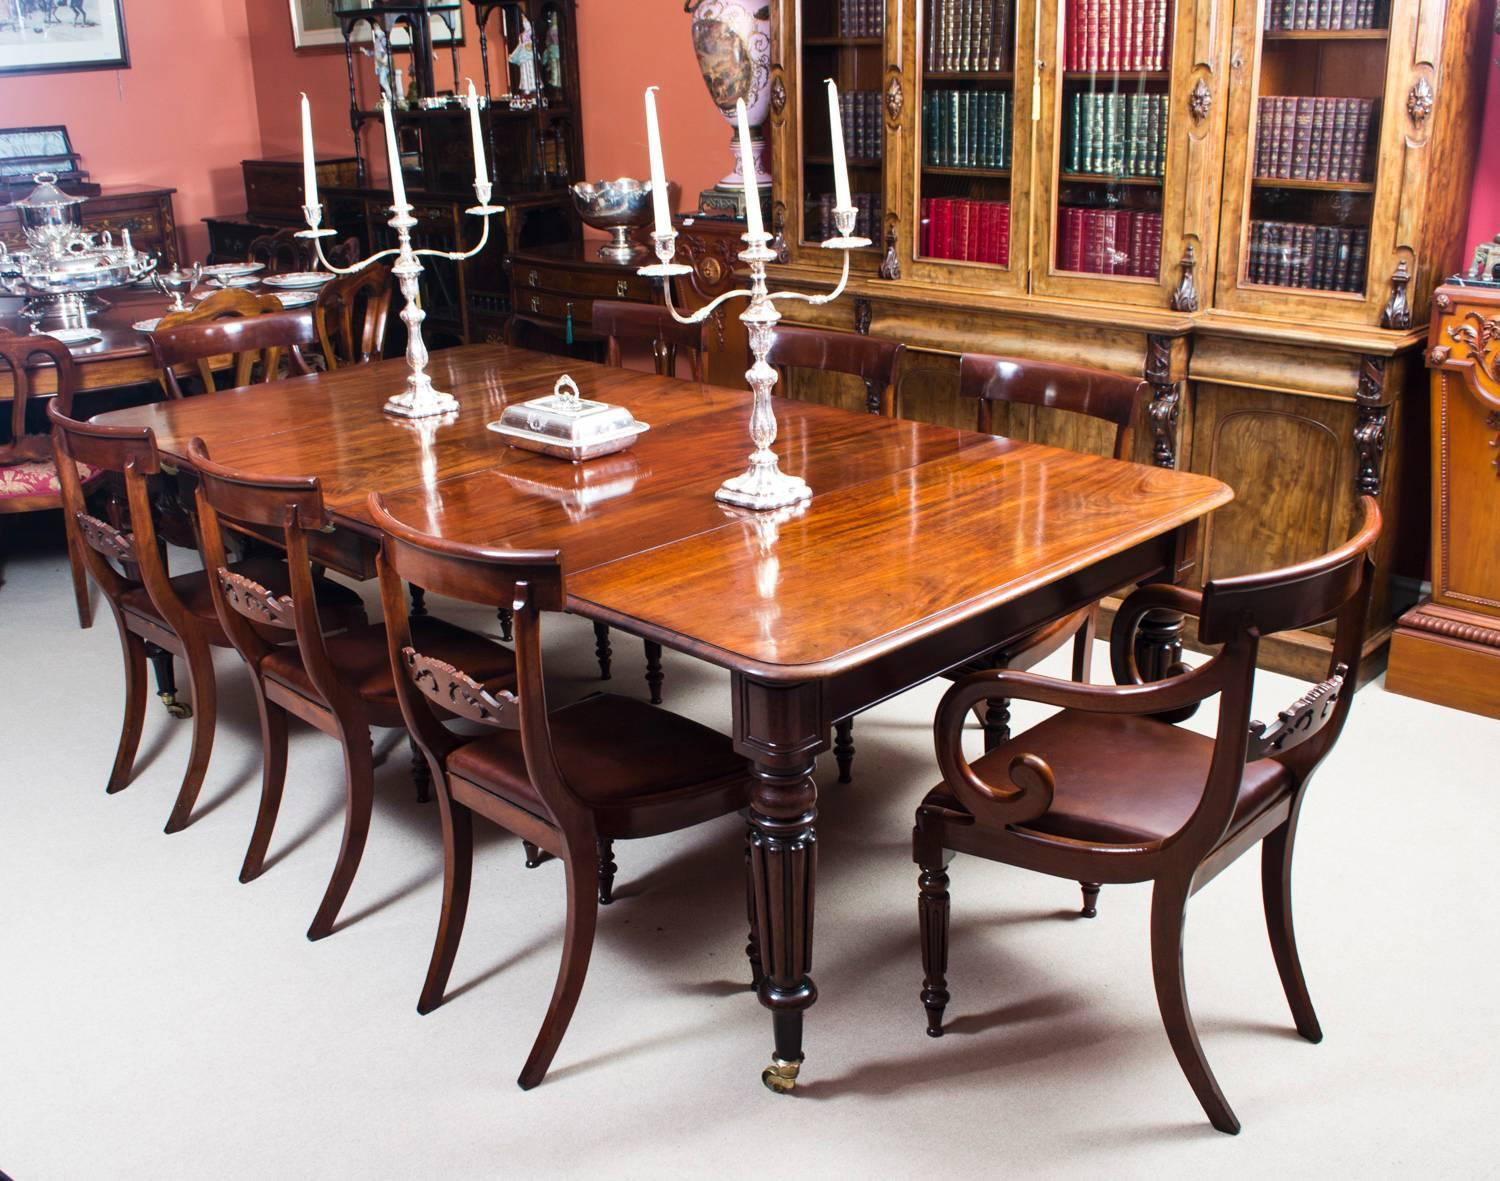 Antique regency mahogany gillows style dining table circa for Regency dining room